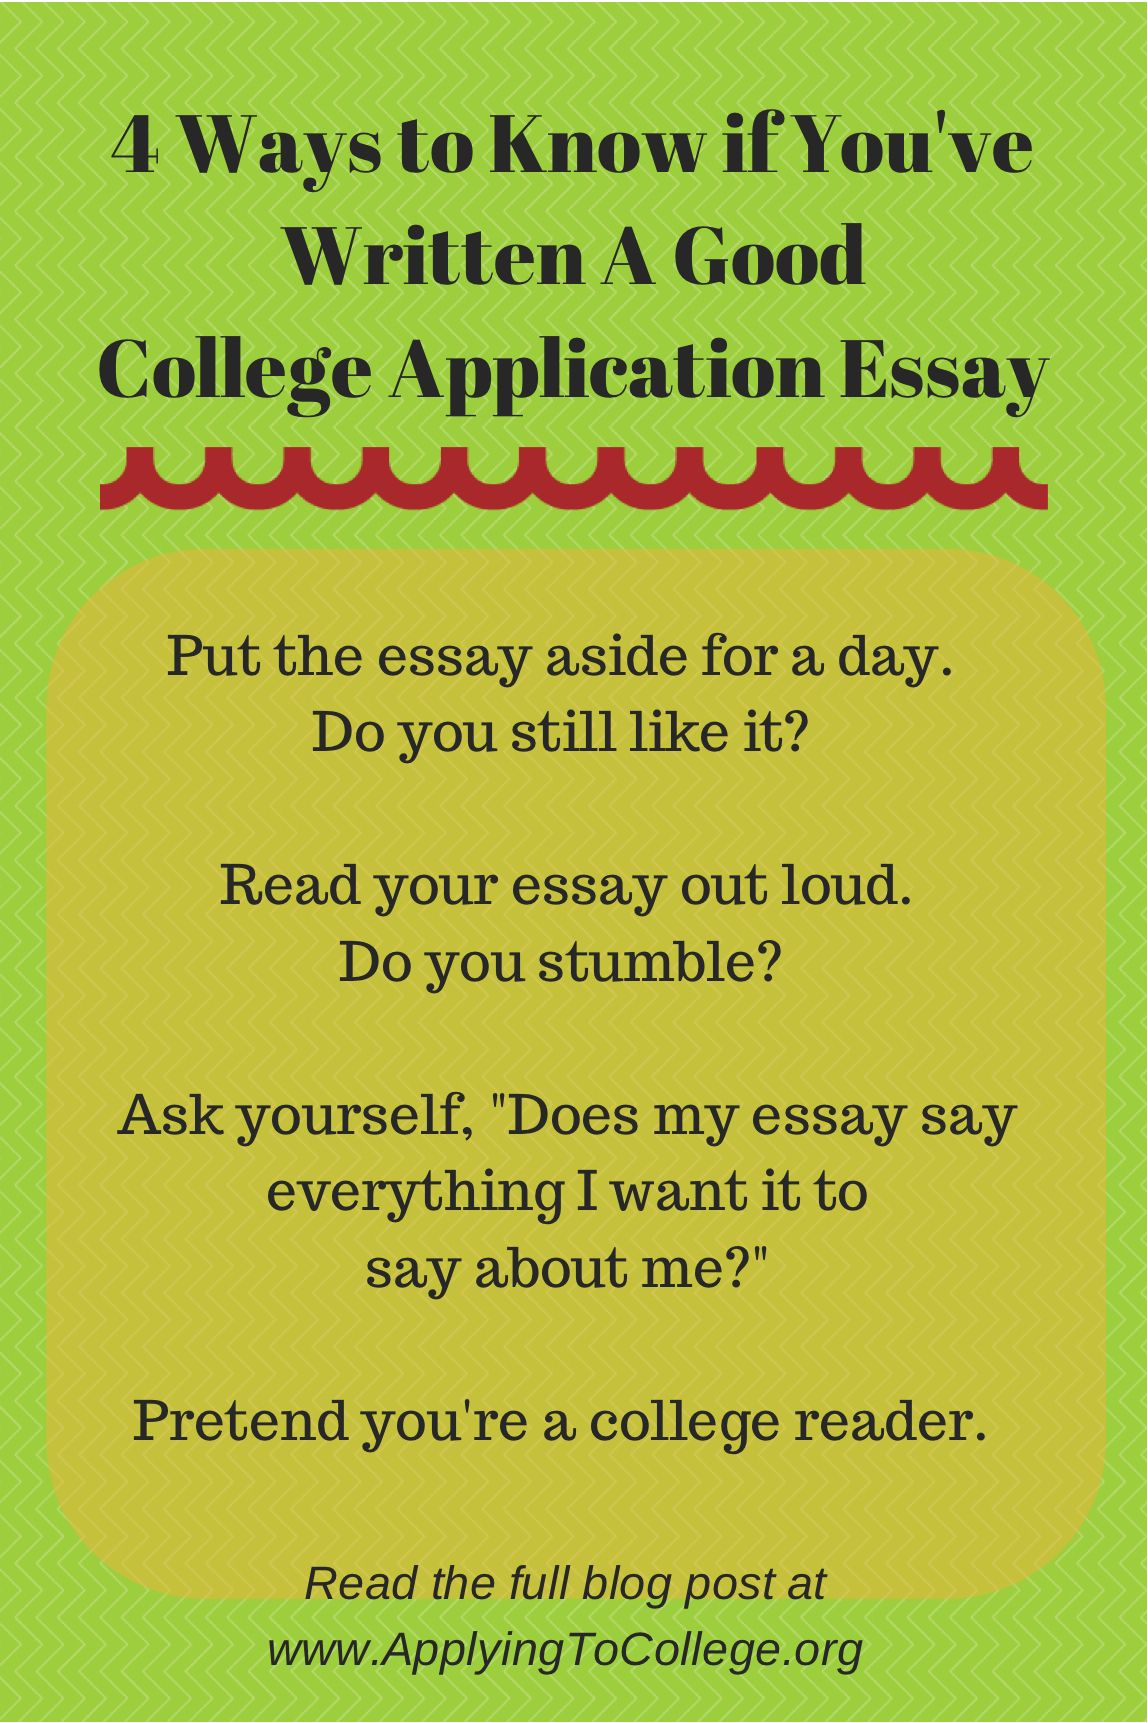 003 Common Appay Prompts How To Write Application School Uc College Admission Ucf Prompt Examples Texas Admissions Rare App Essay 2015-16 Full